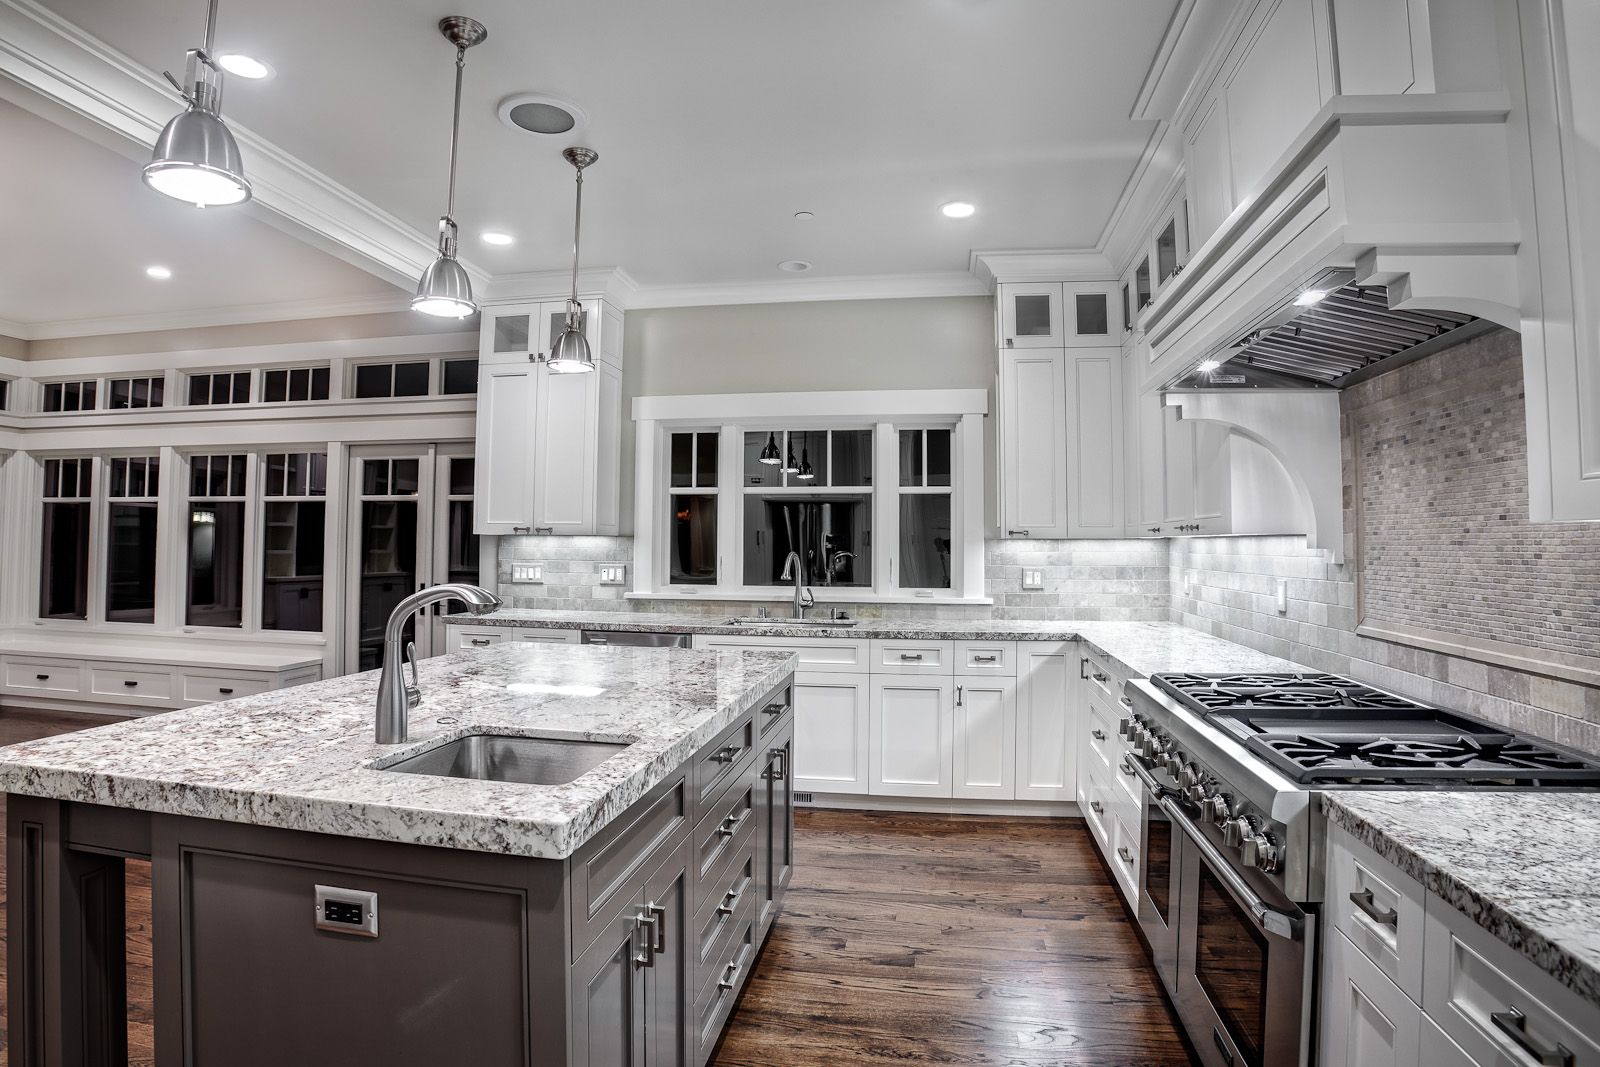 Granite Kitchen Countertops With White Cabinets Kashmir White Granite Countertops Showcasing Striking Interior